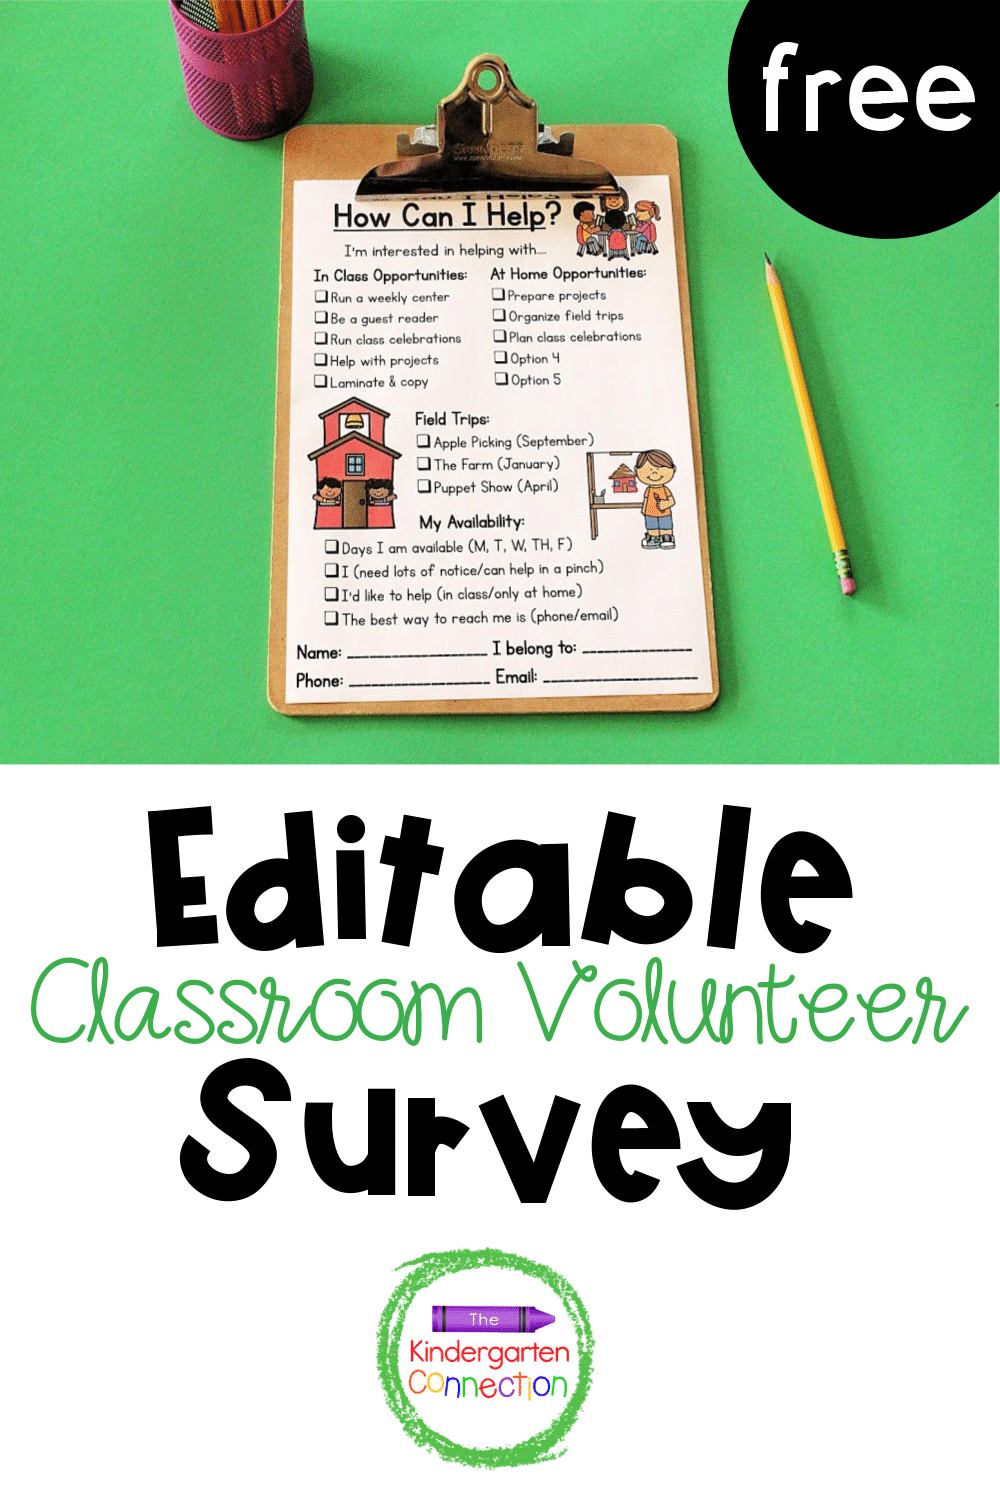 Finding the right fit for classroom volunteers matters. Start with this free volunteer survey and ask what talents they are excited to share!